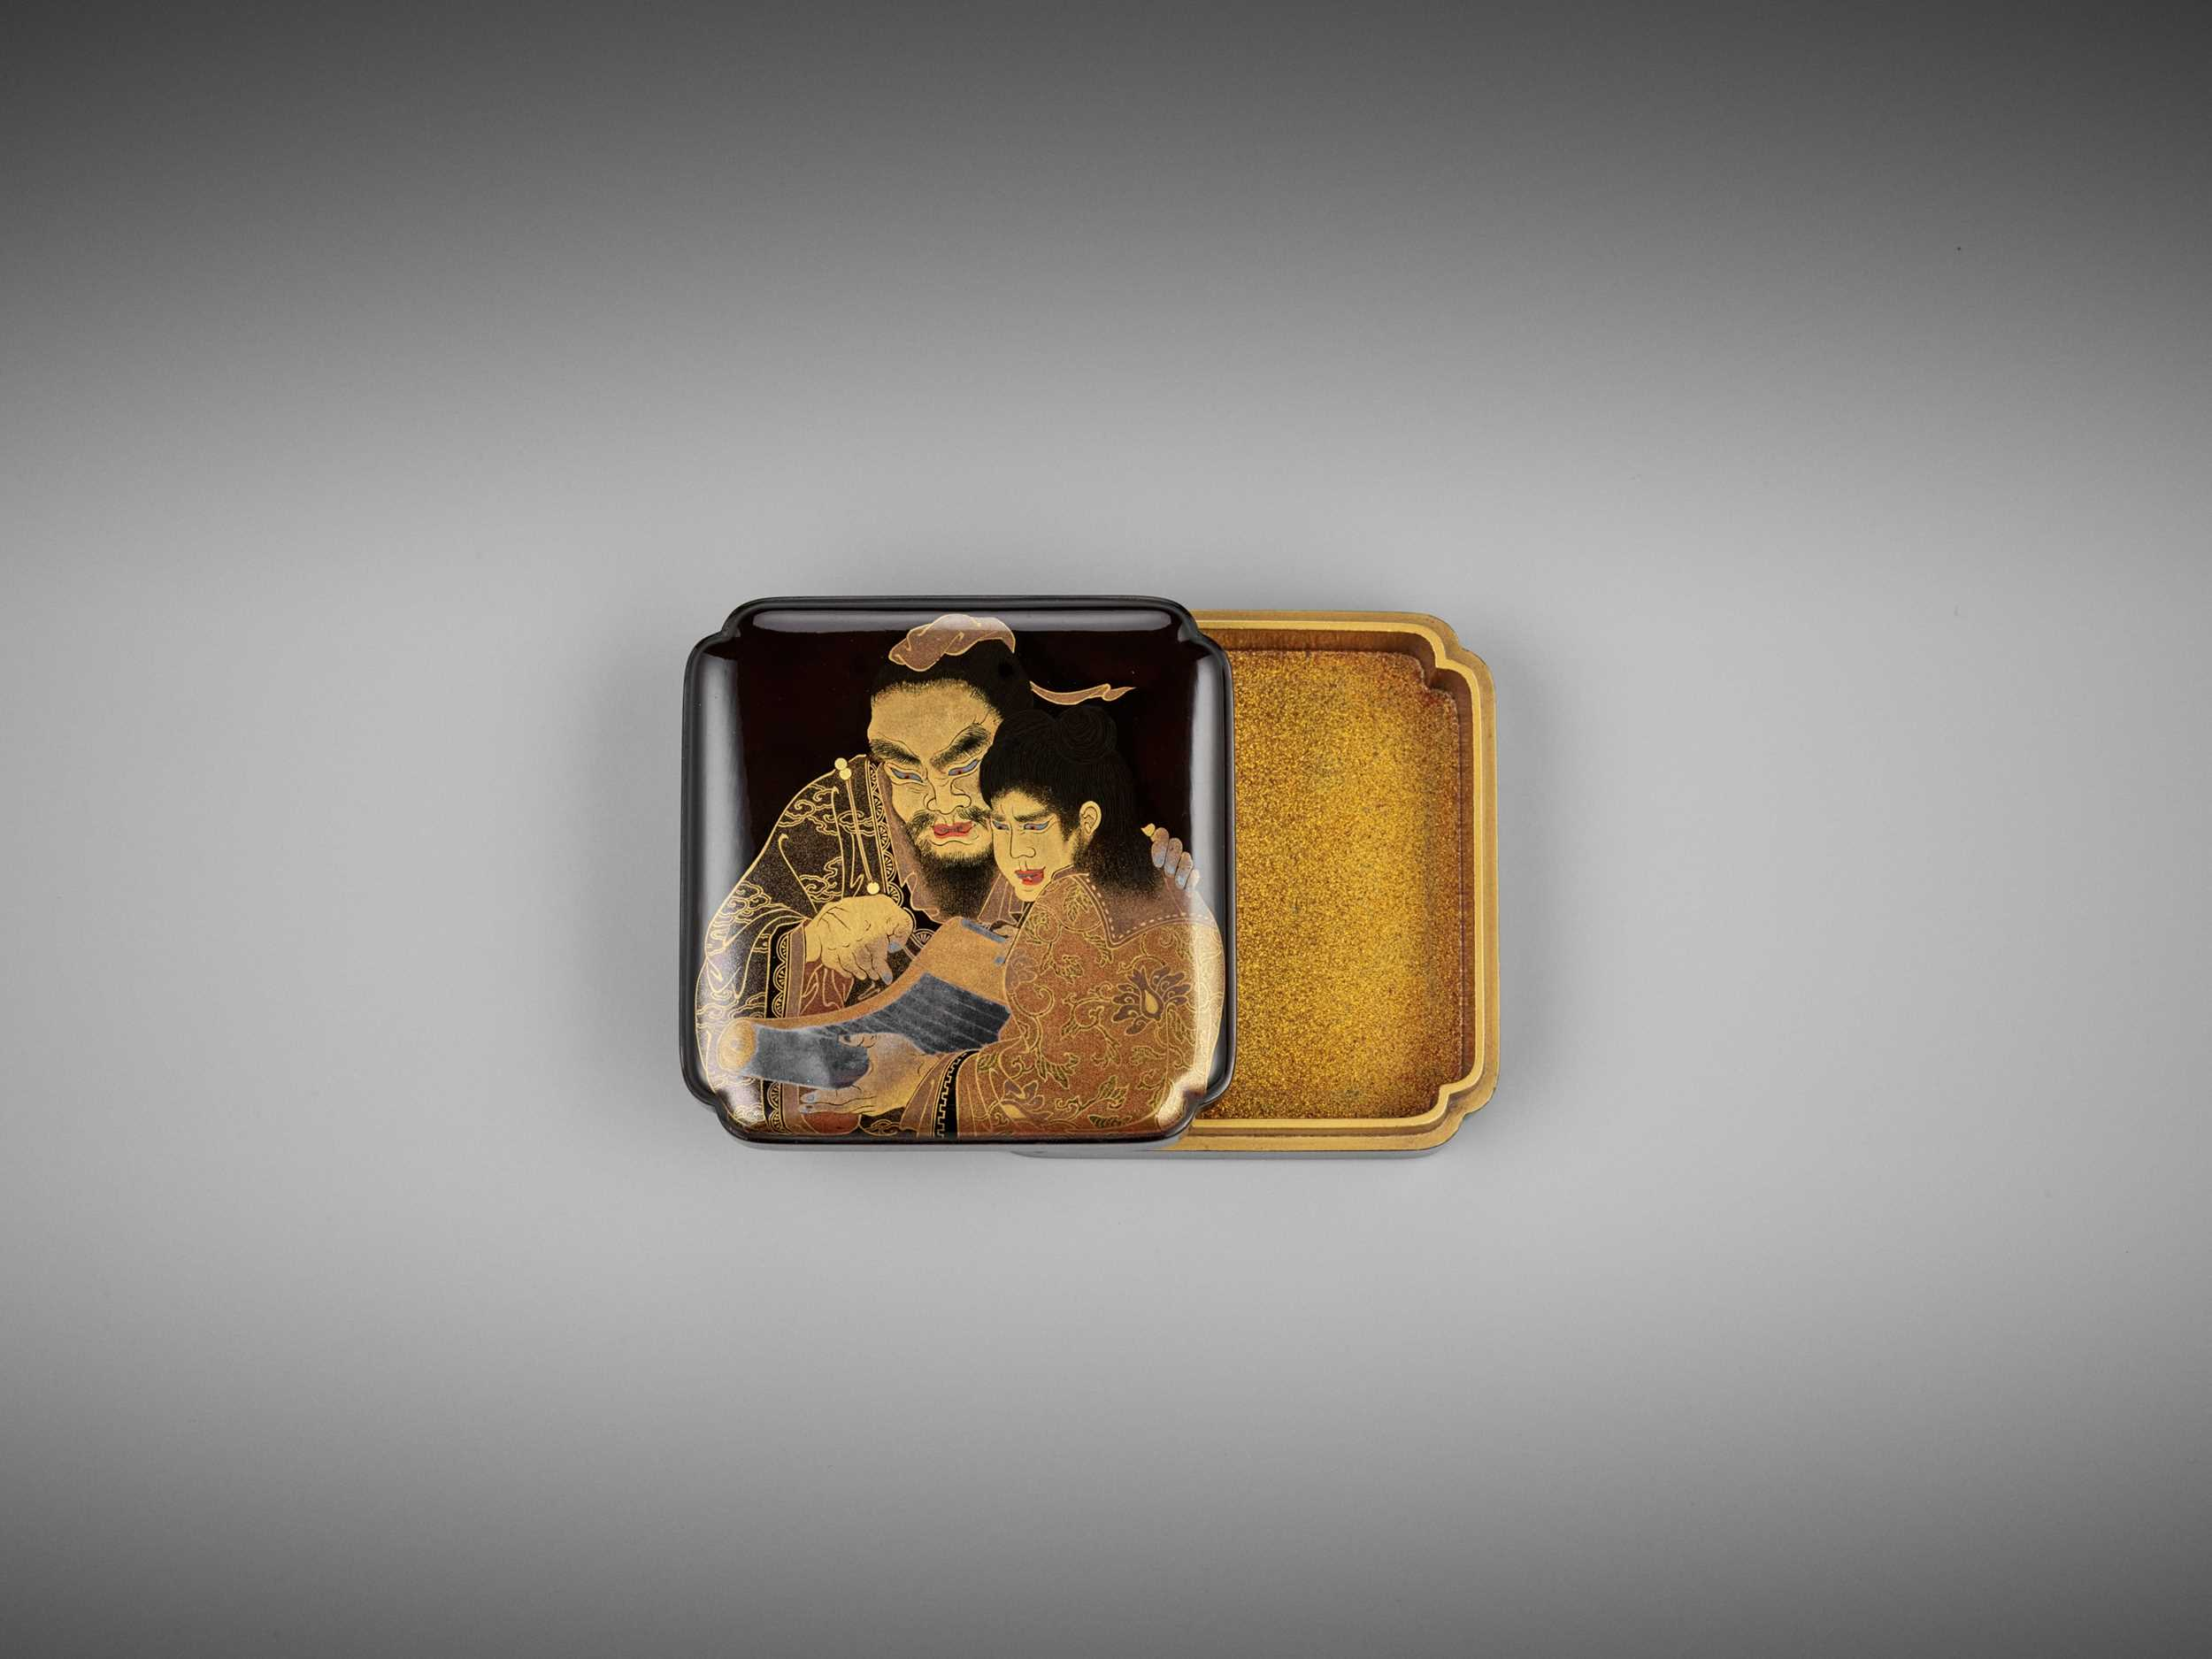 Lot 112 - A FINE LACQUER KOGO (INCENSE BOX) WITH KANZAN AND JITTOKU